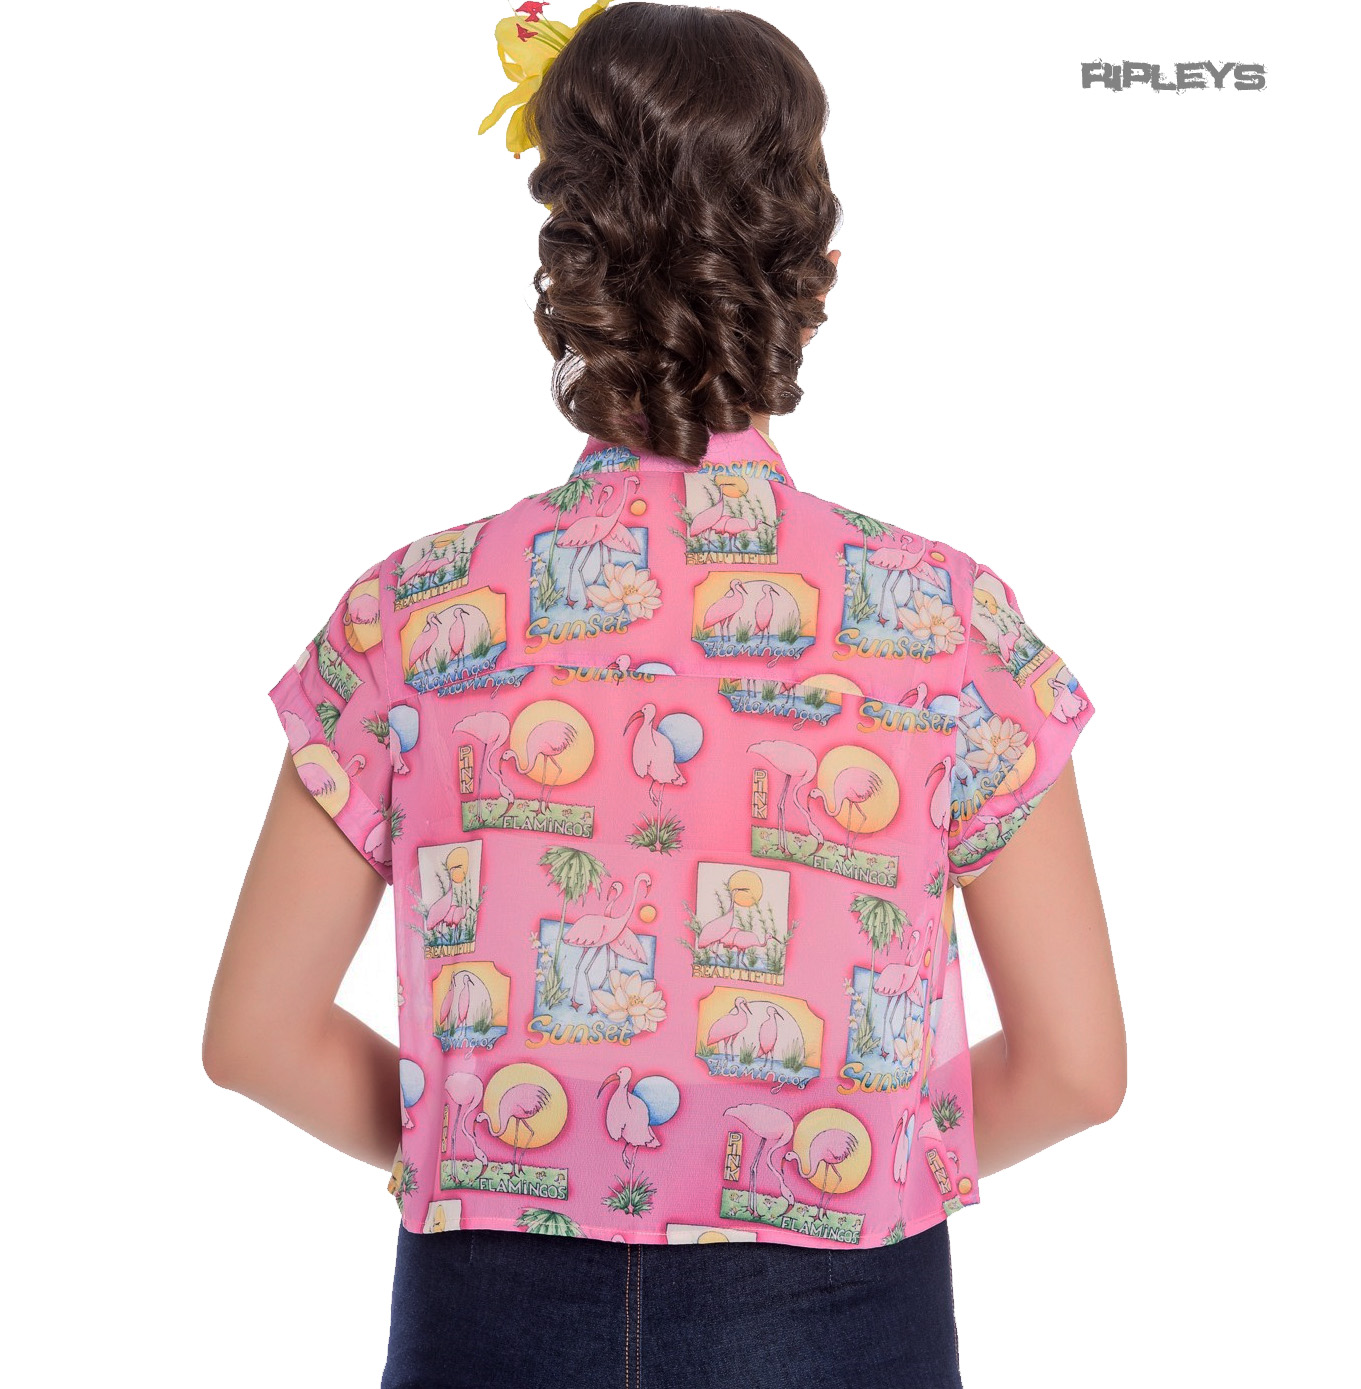 thumbnail 35 - Hell Bunny 50s Retro Top Pink Flamingo MAXINE Cropped Blouse Shirt All Sizes